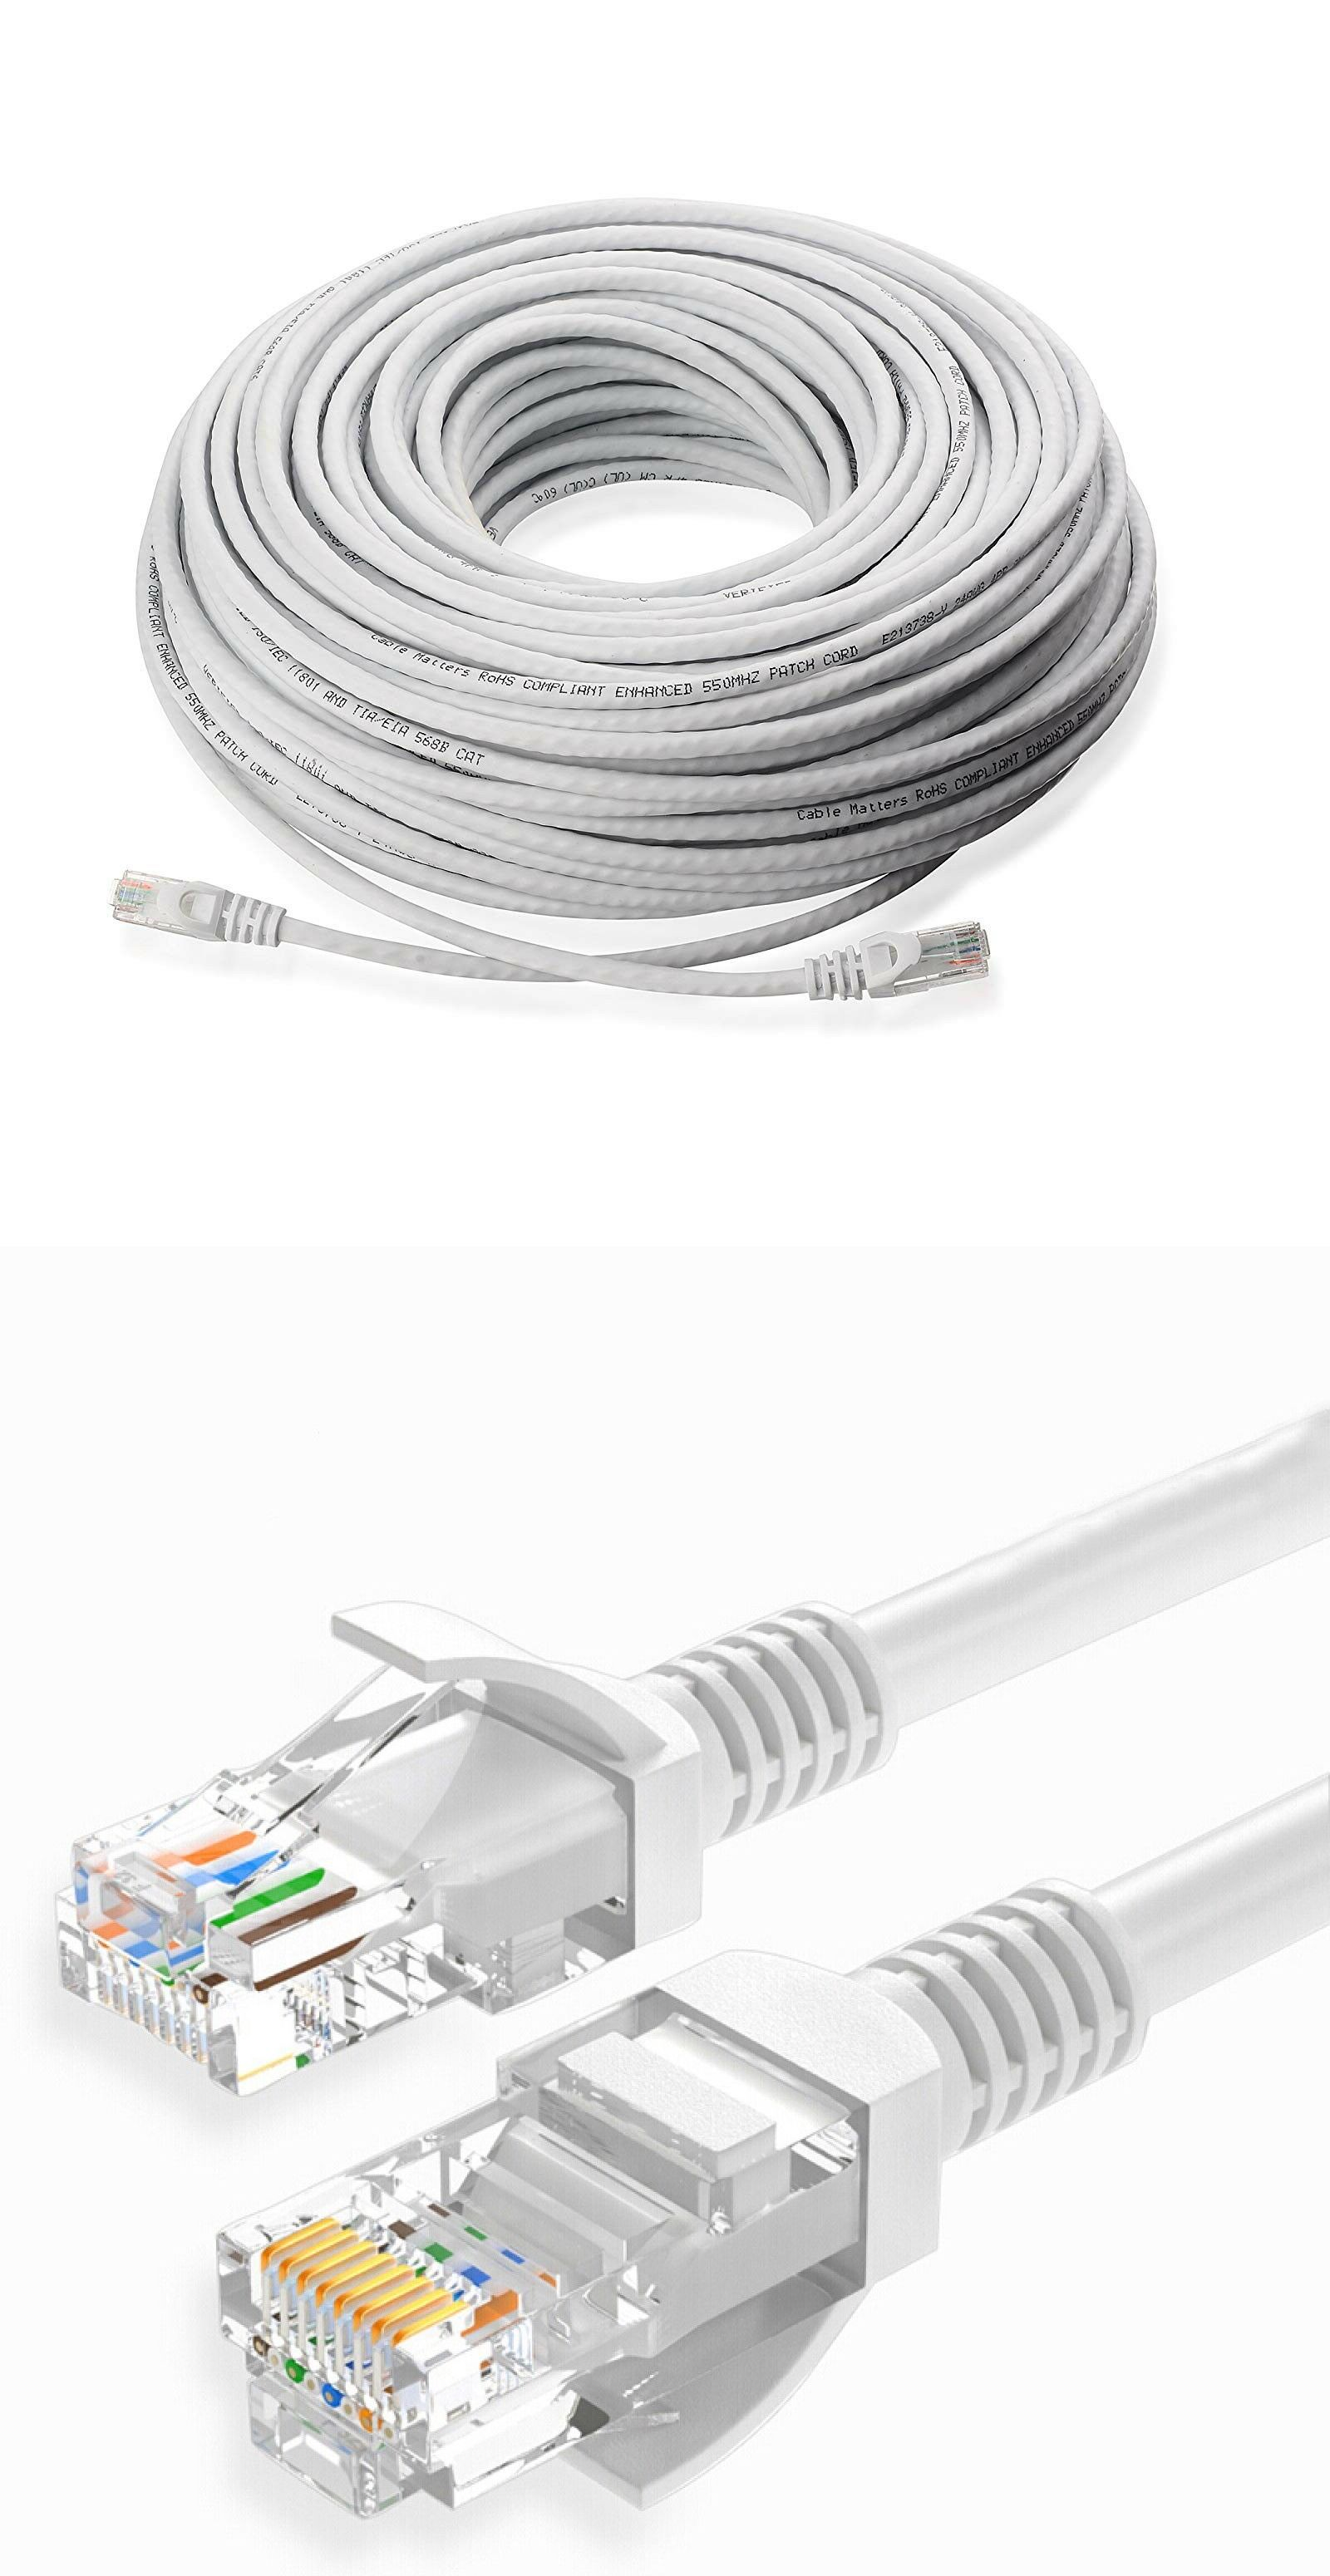 medium resolution of ethernet cables rj 45 8p8c 64035 100ft cat5e poe ip camera nvr ethernet cable